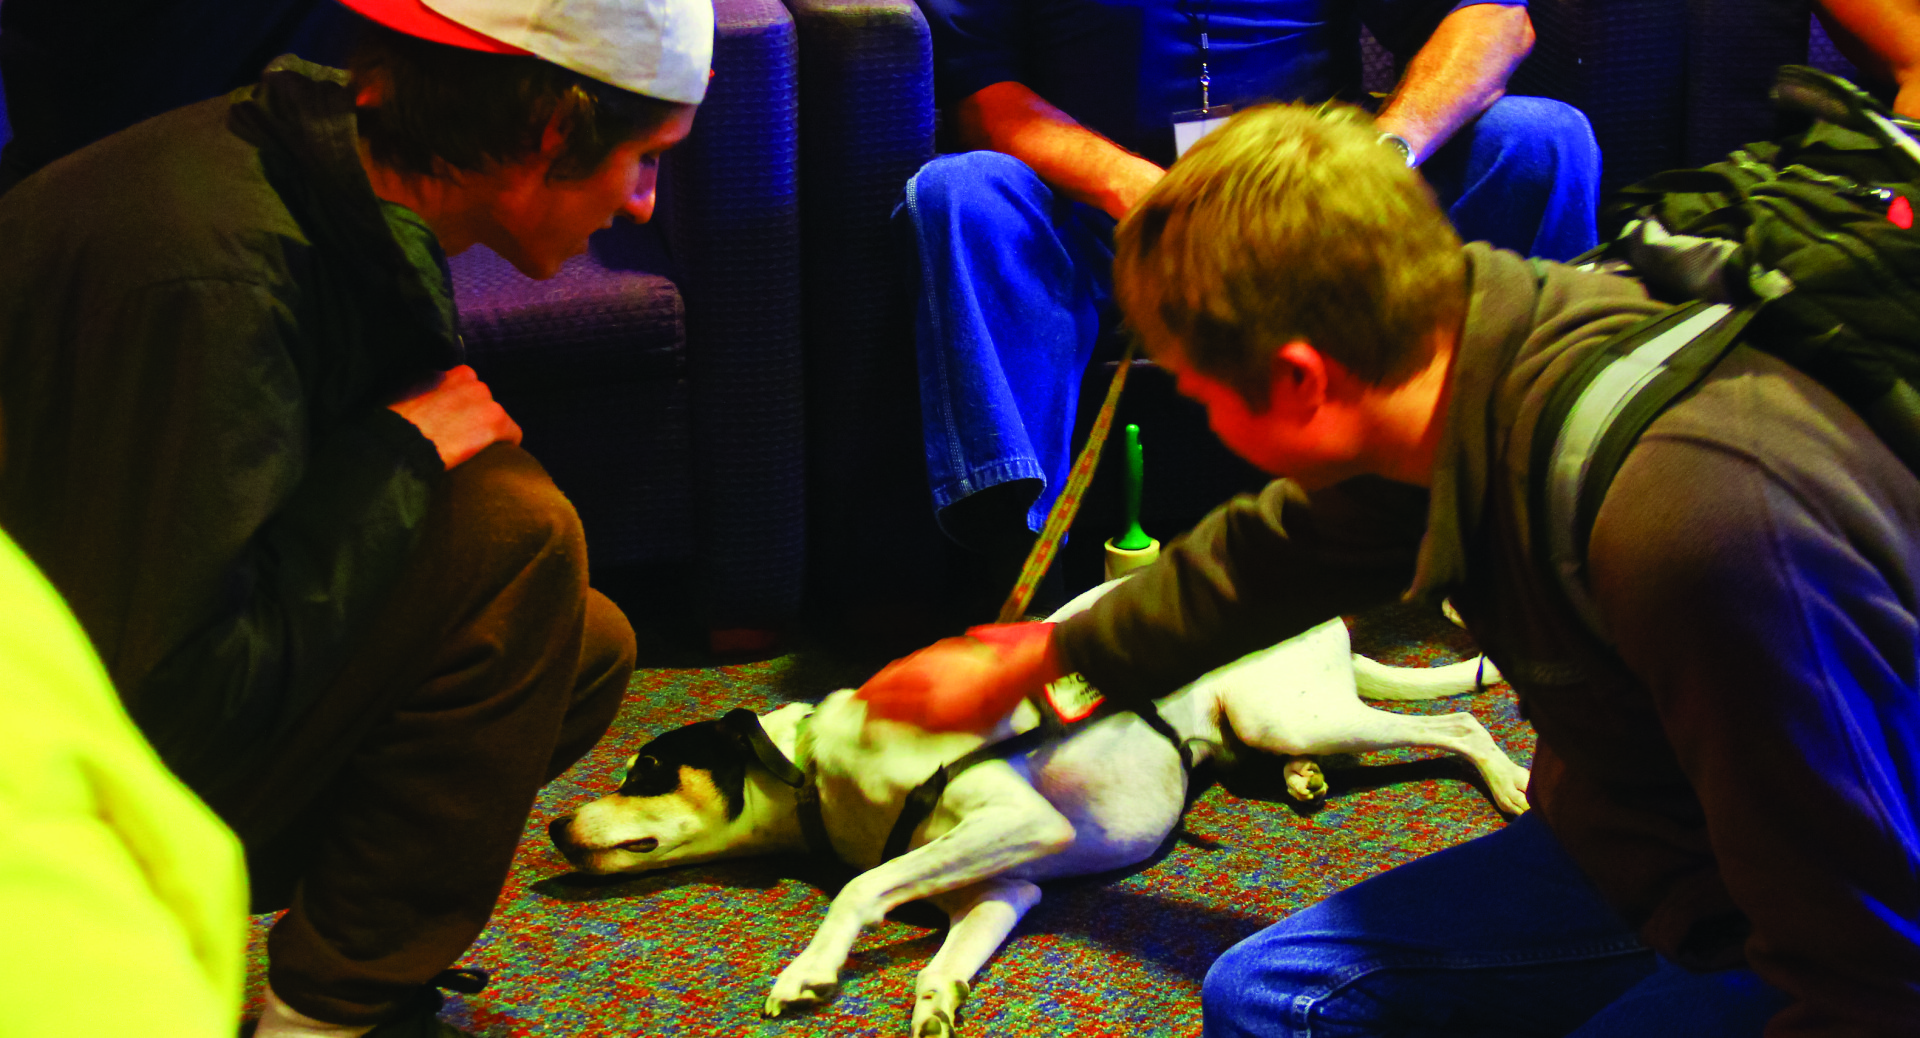 De-Stress Fest allows students to take a break during finals